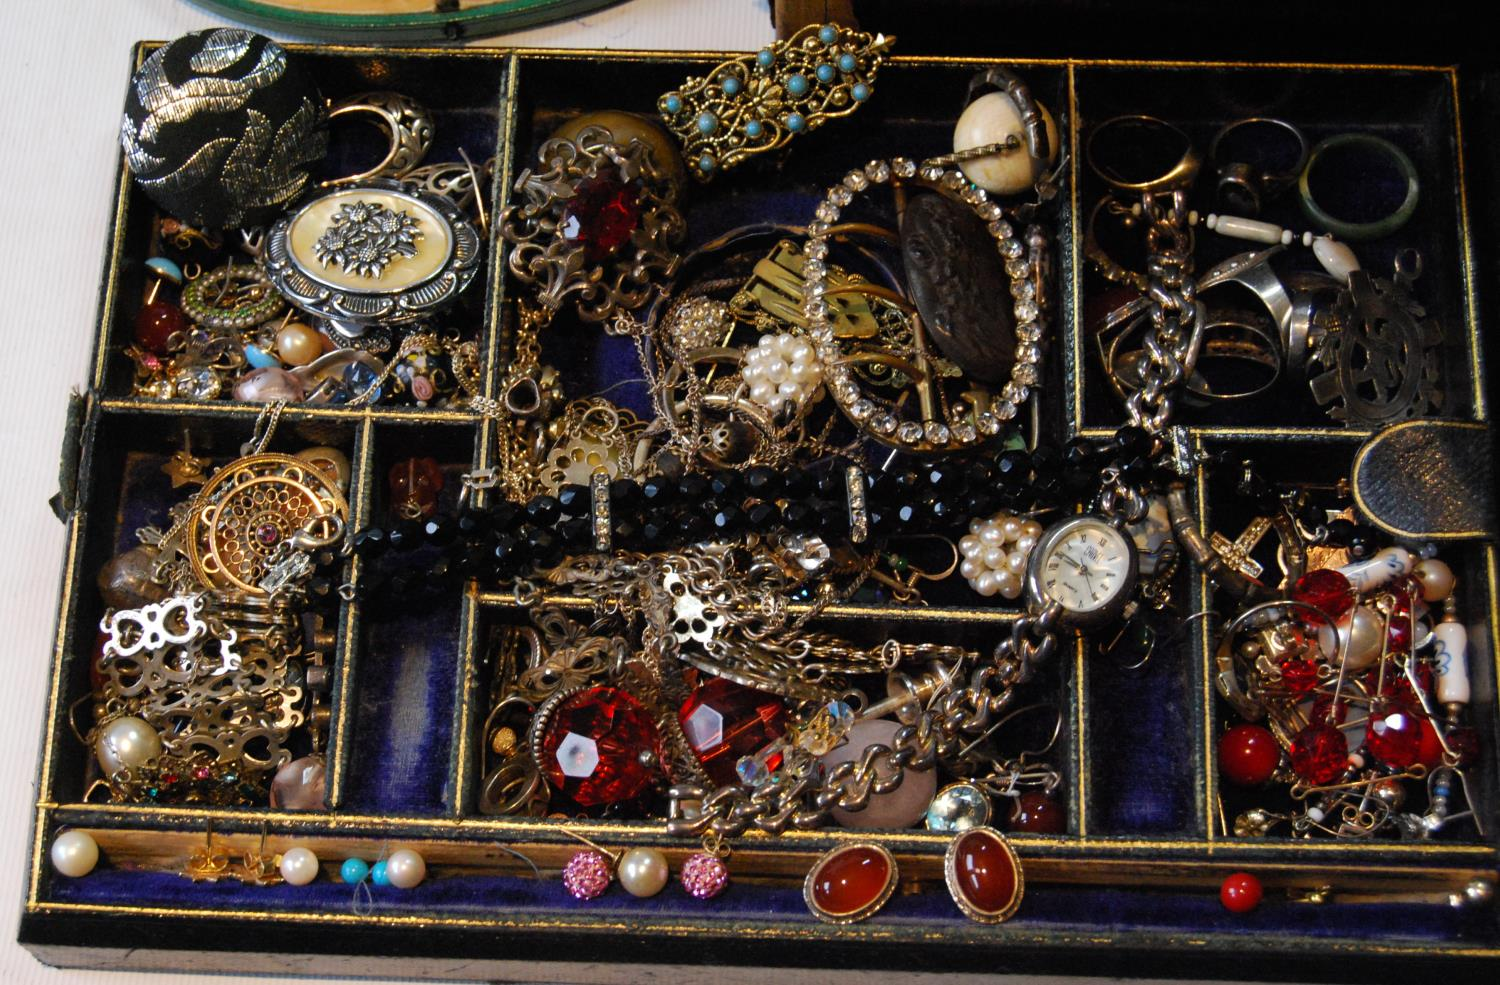 Victorian morocco jewel box with a quantity of silver, costume and other jewellery. - Image 2 of 4